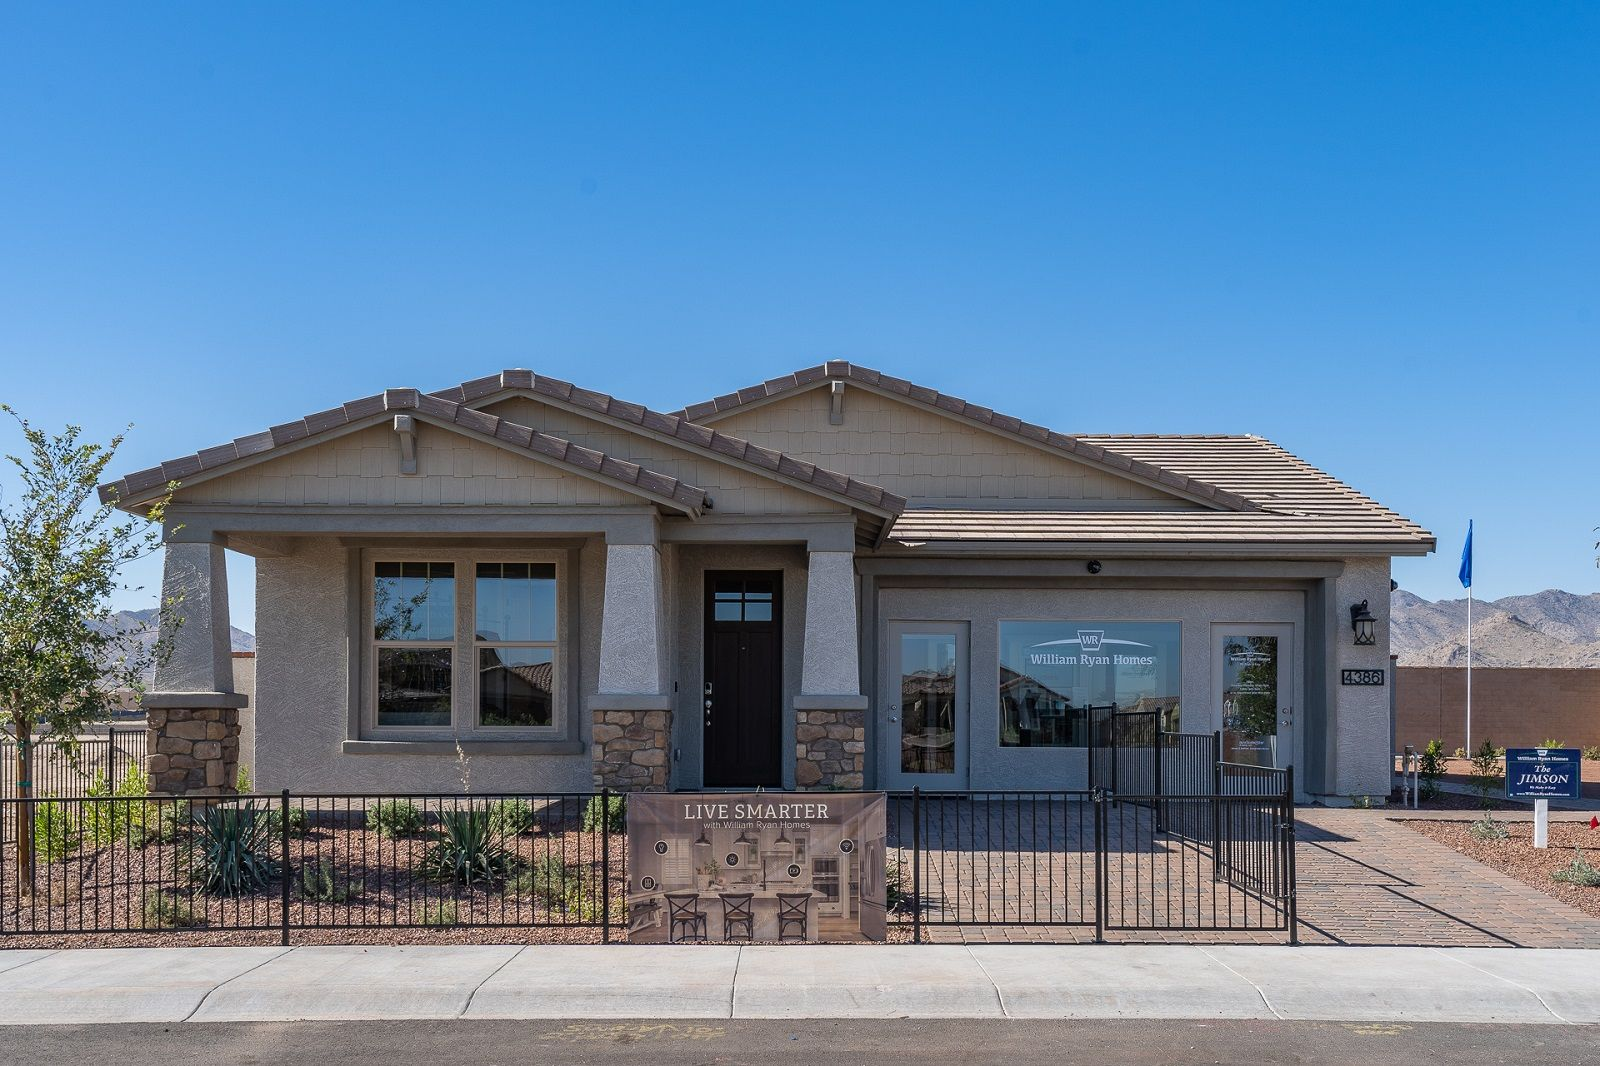 The Front Exterior of the Jimson model, a new home for sale in Buckeye, AZ from William Ryan Home...:Jimson Model Home - Open Concept Floor Plan - Front Exterior